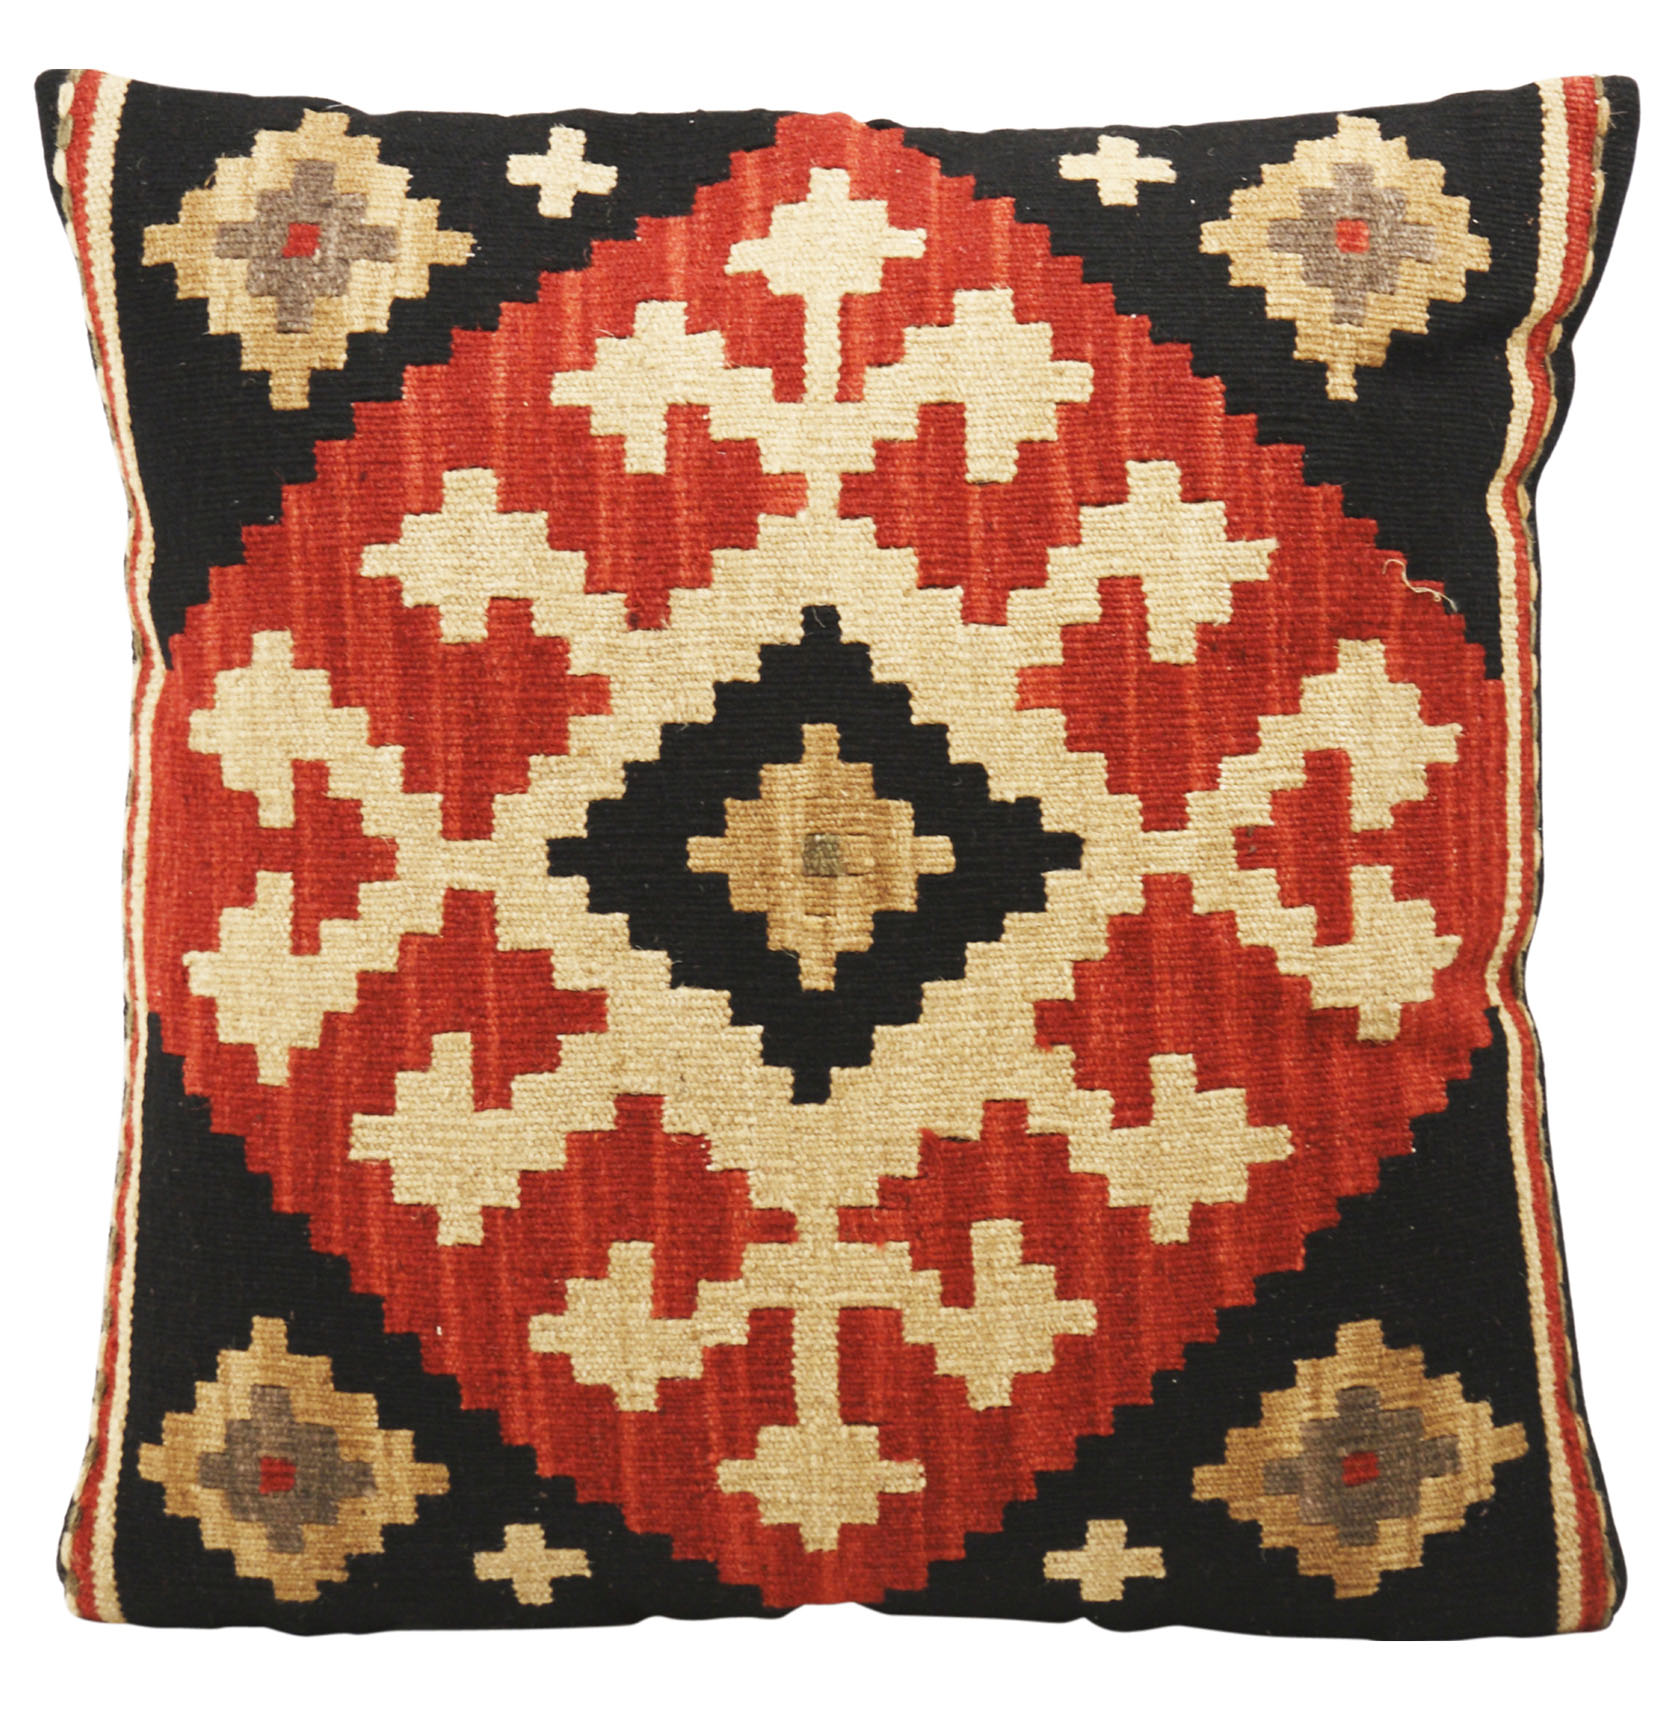 Ataylana Black Red Kilim Pillow - 22x22